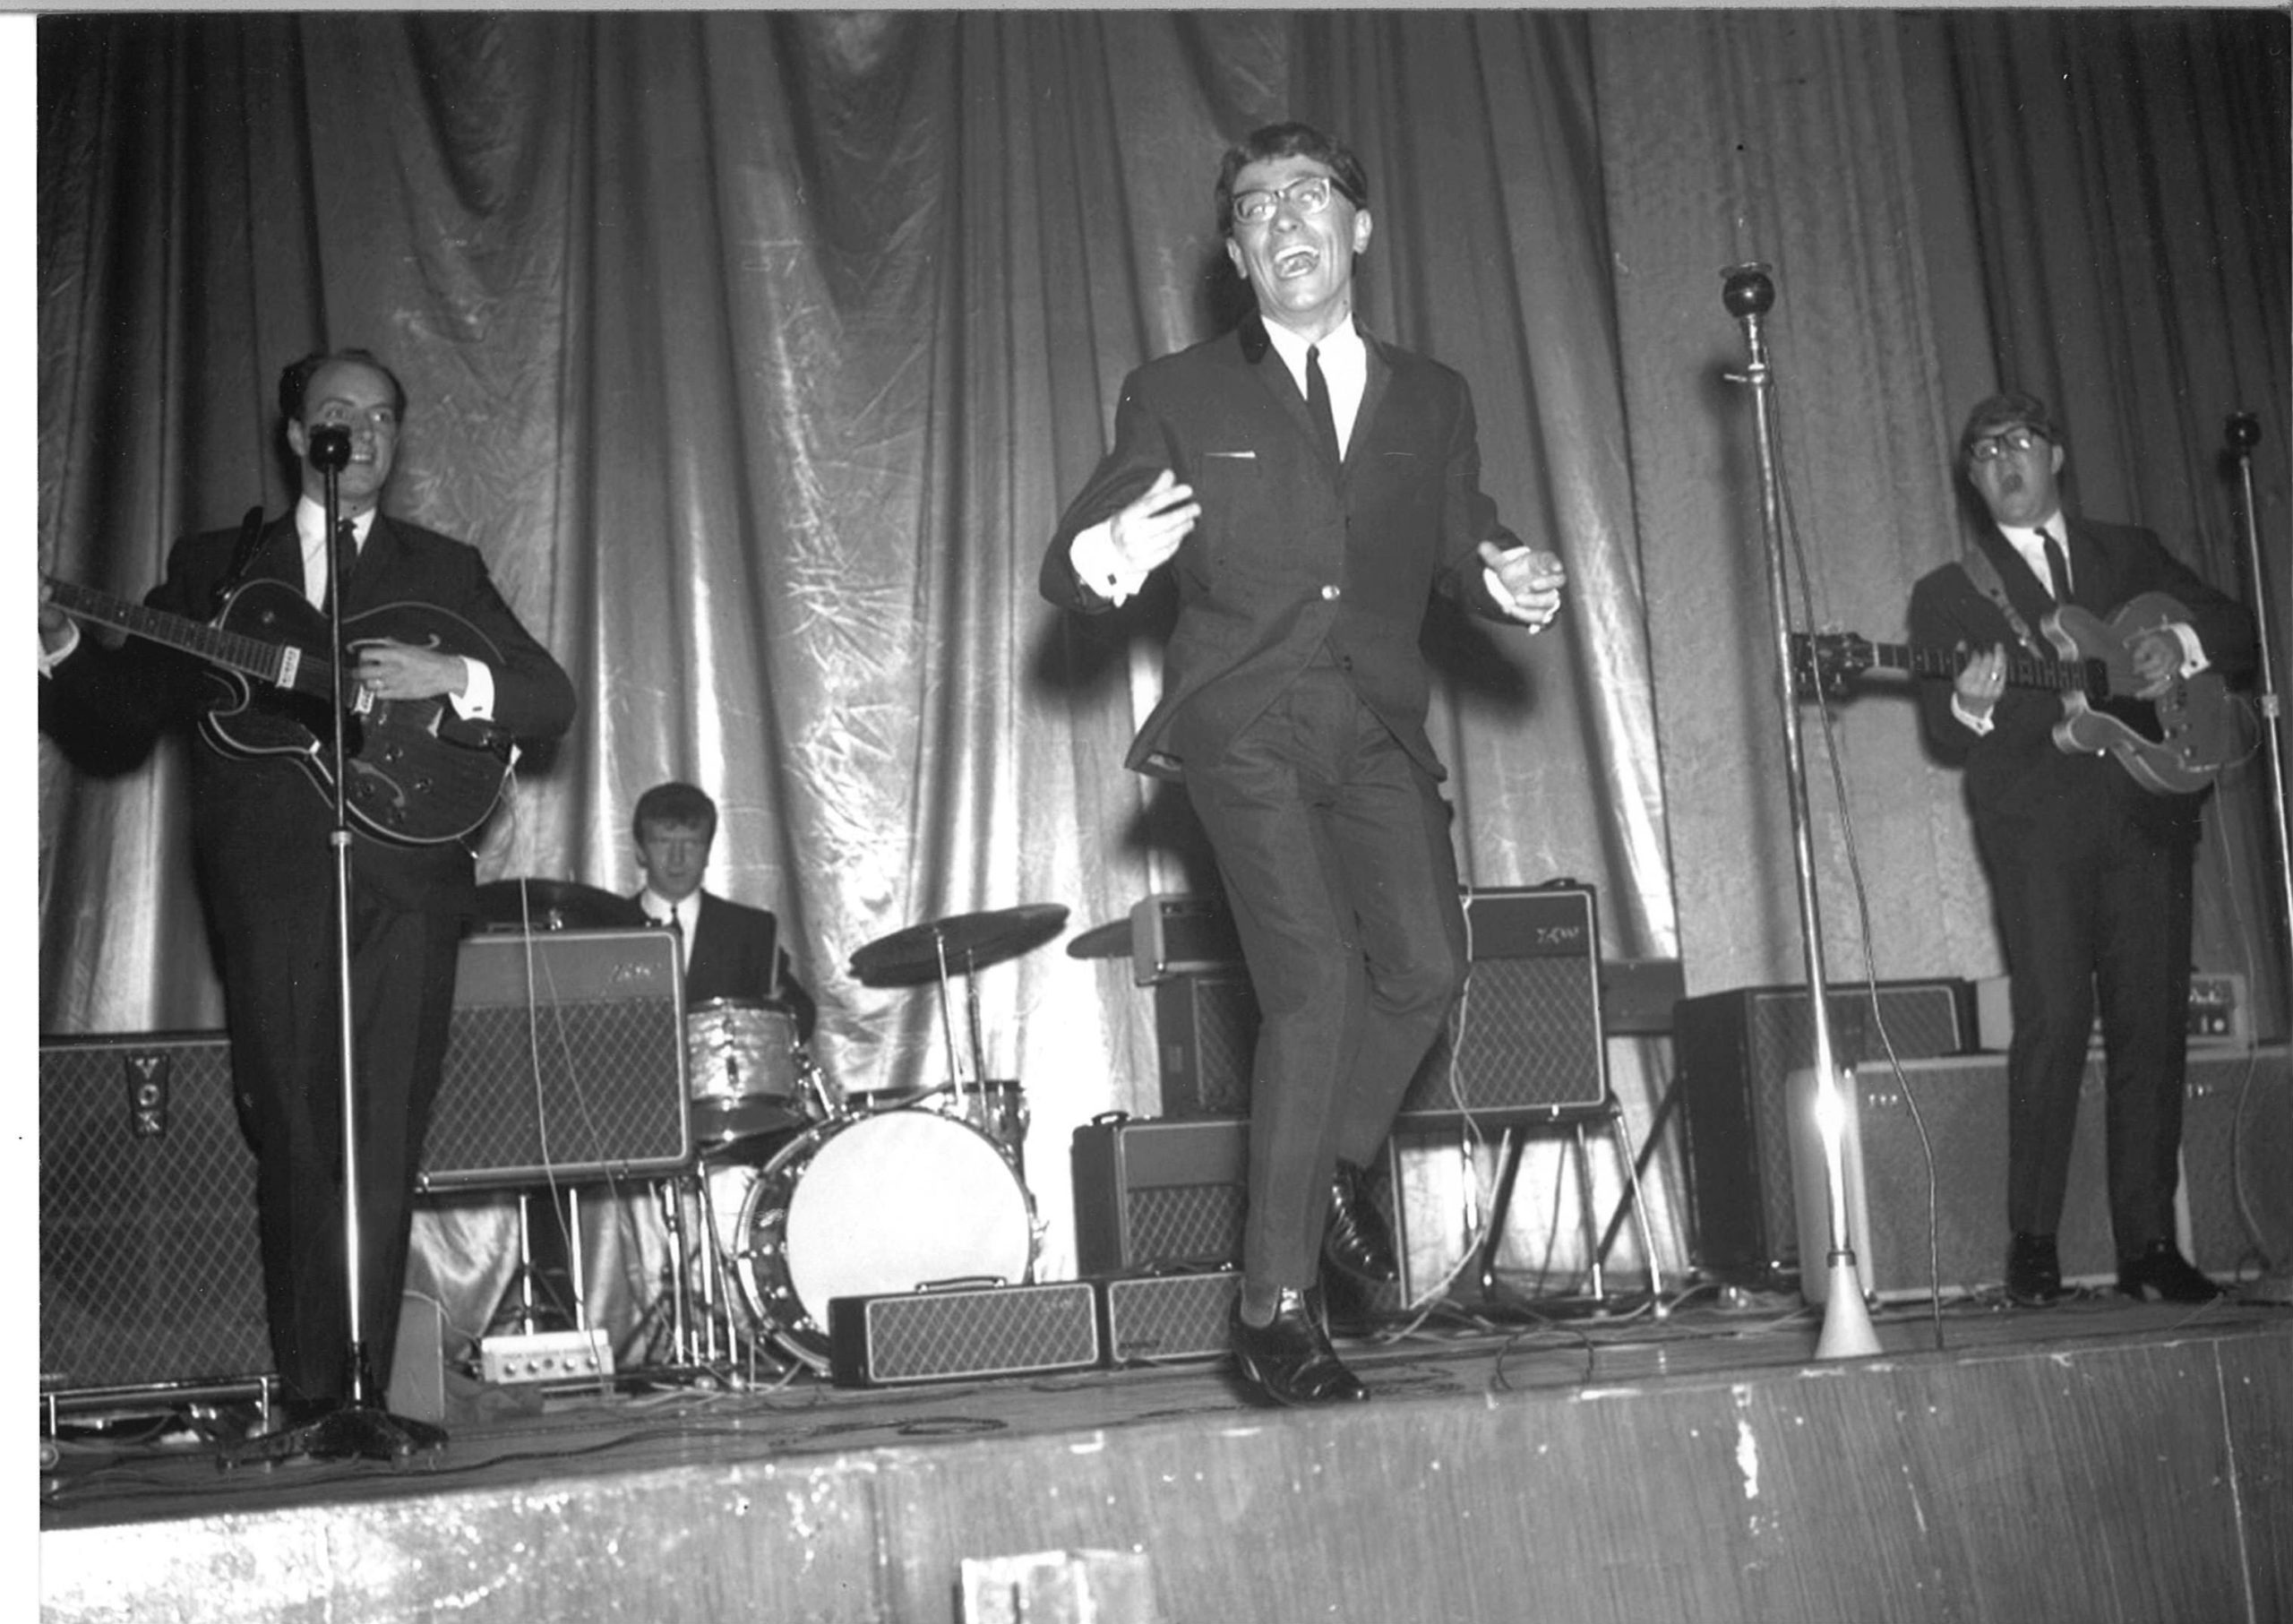 Frank's band supported groups like Freddie and the Dreamers in the 1960s